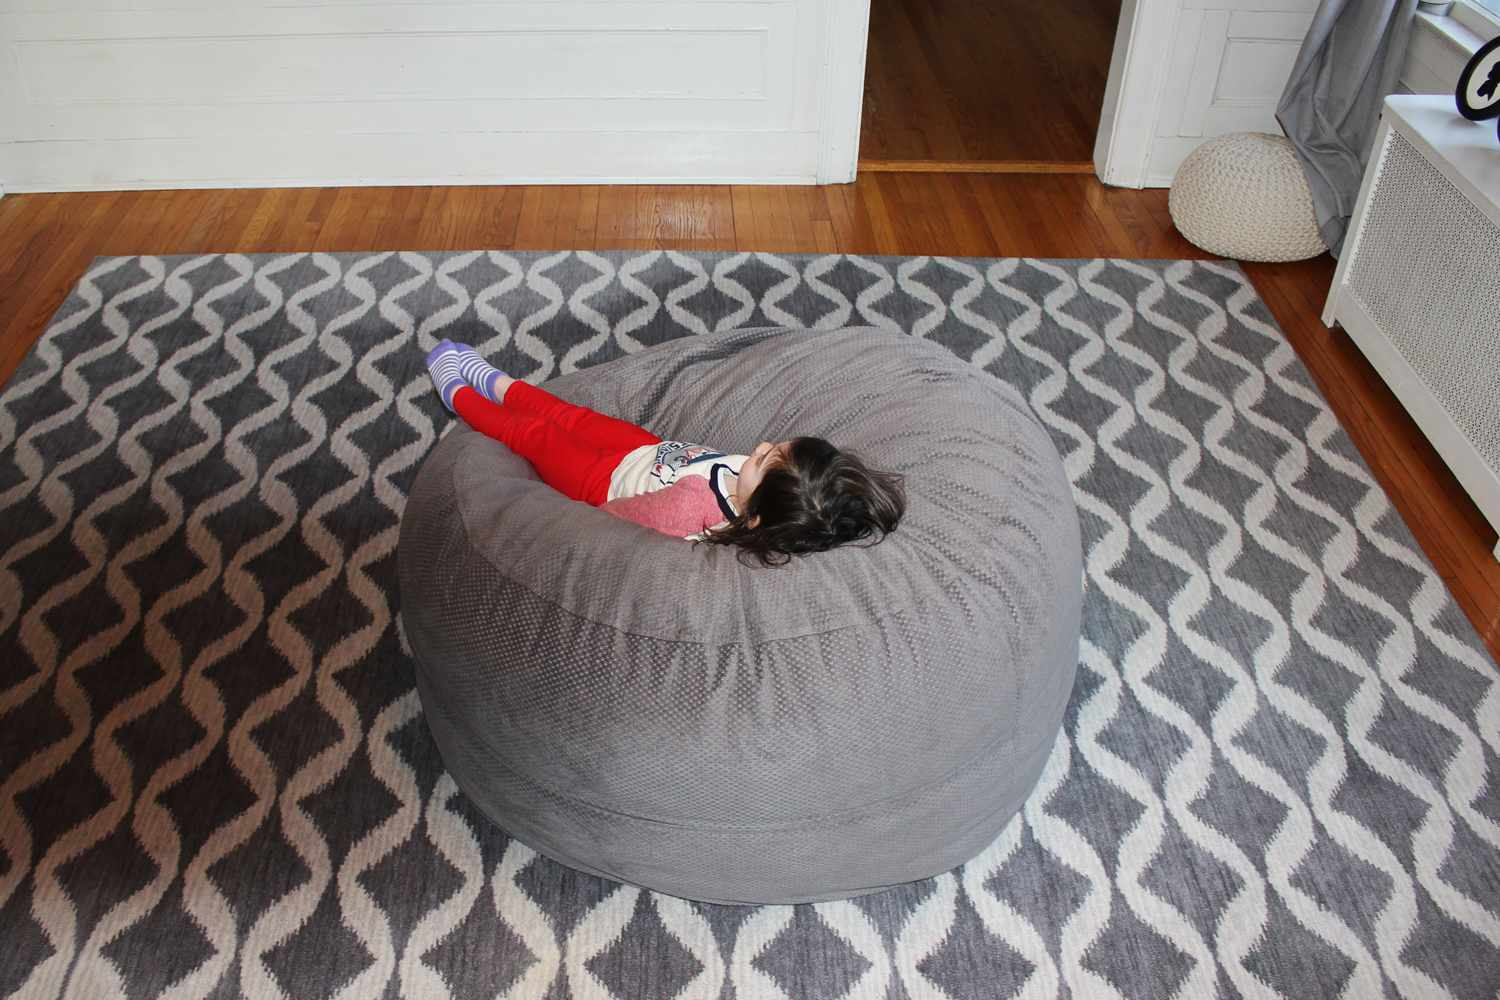 CordaRoy bean bag chair with child sitting